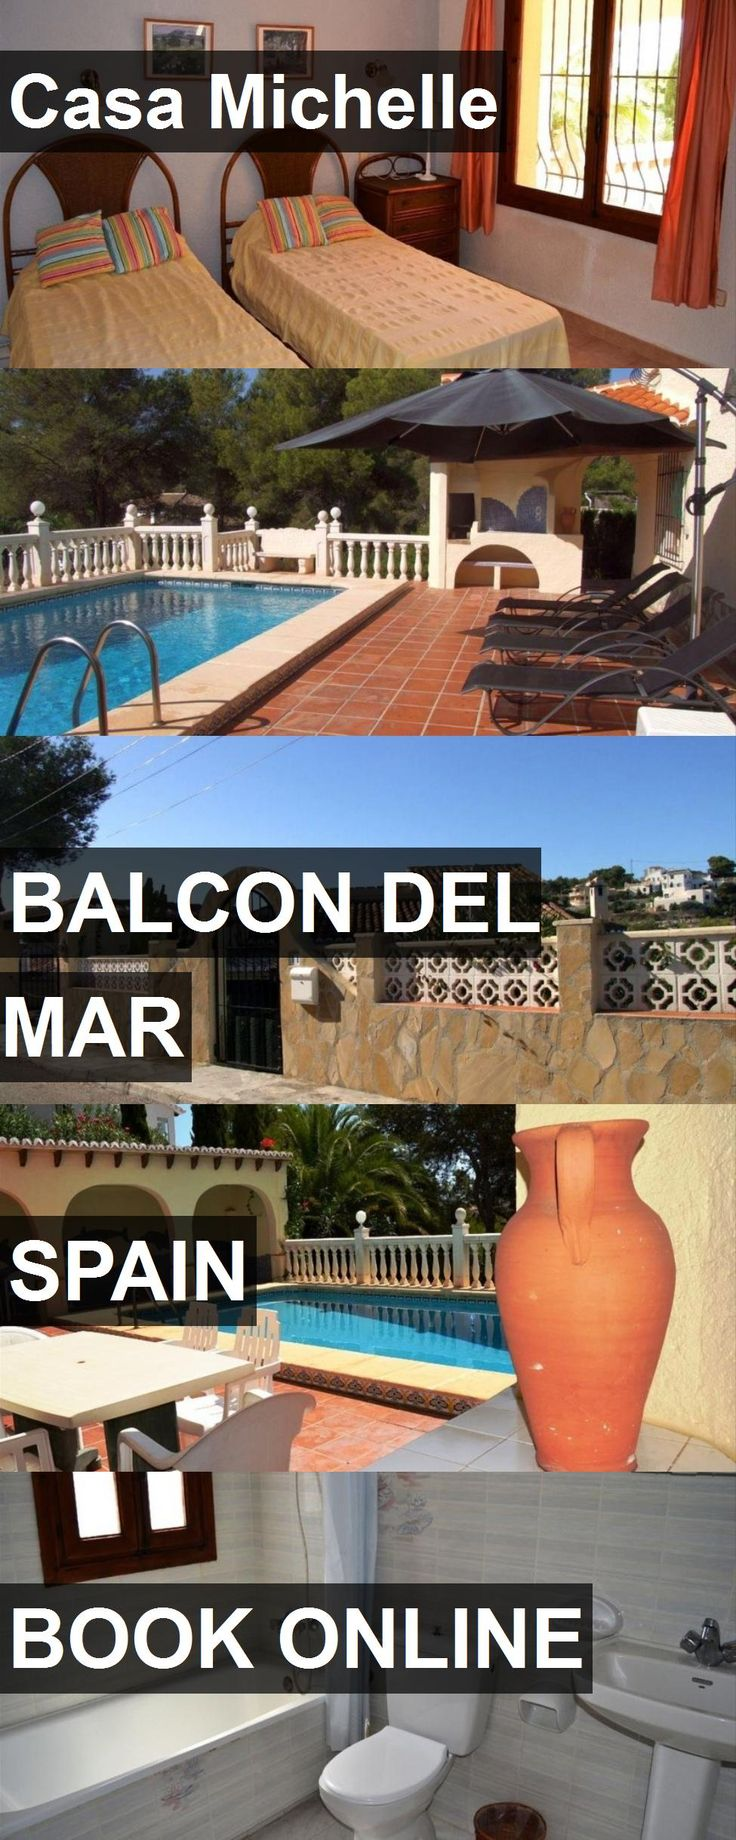 Hotel Casa Michelle in Balcon del Mar, Spain. For more information, photos, reviews and best prices please follow the link. #Spain #BalcondelMar #travel #vacation #hotel